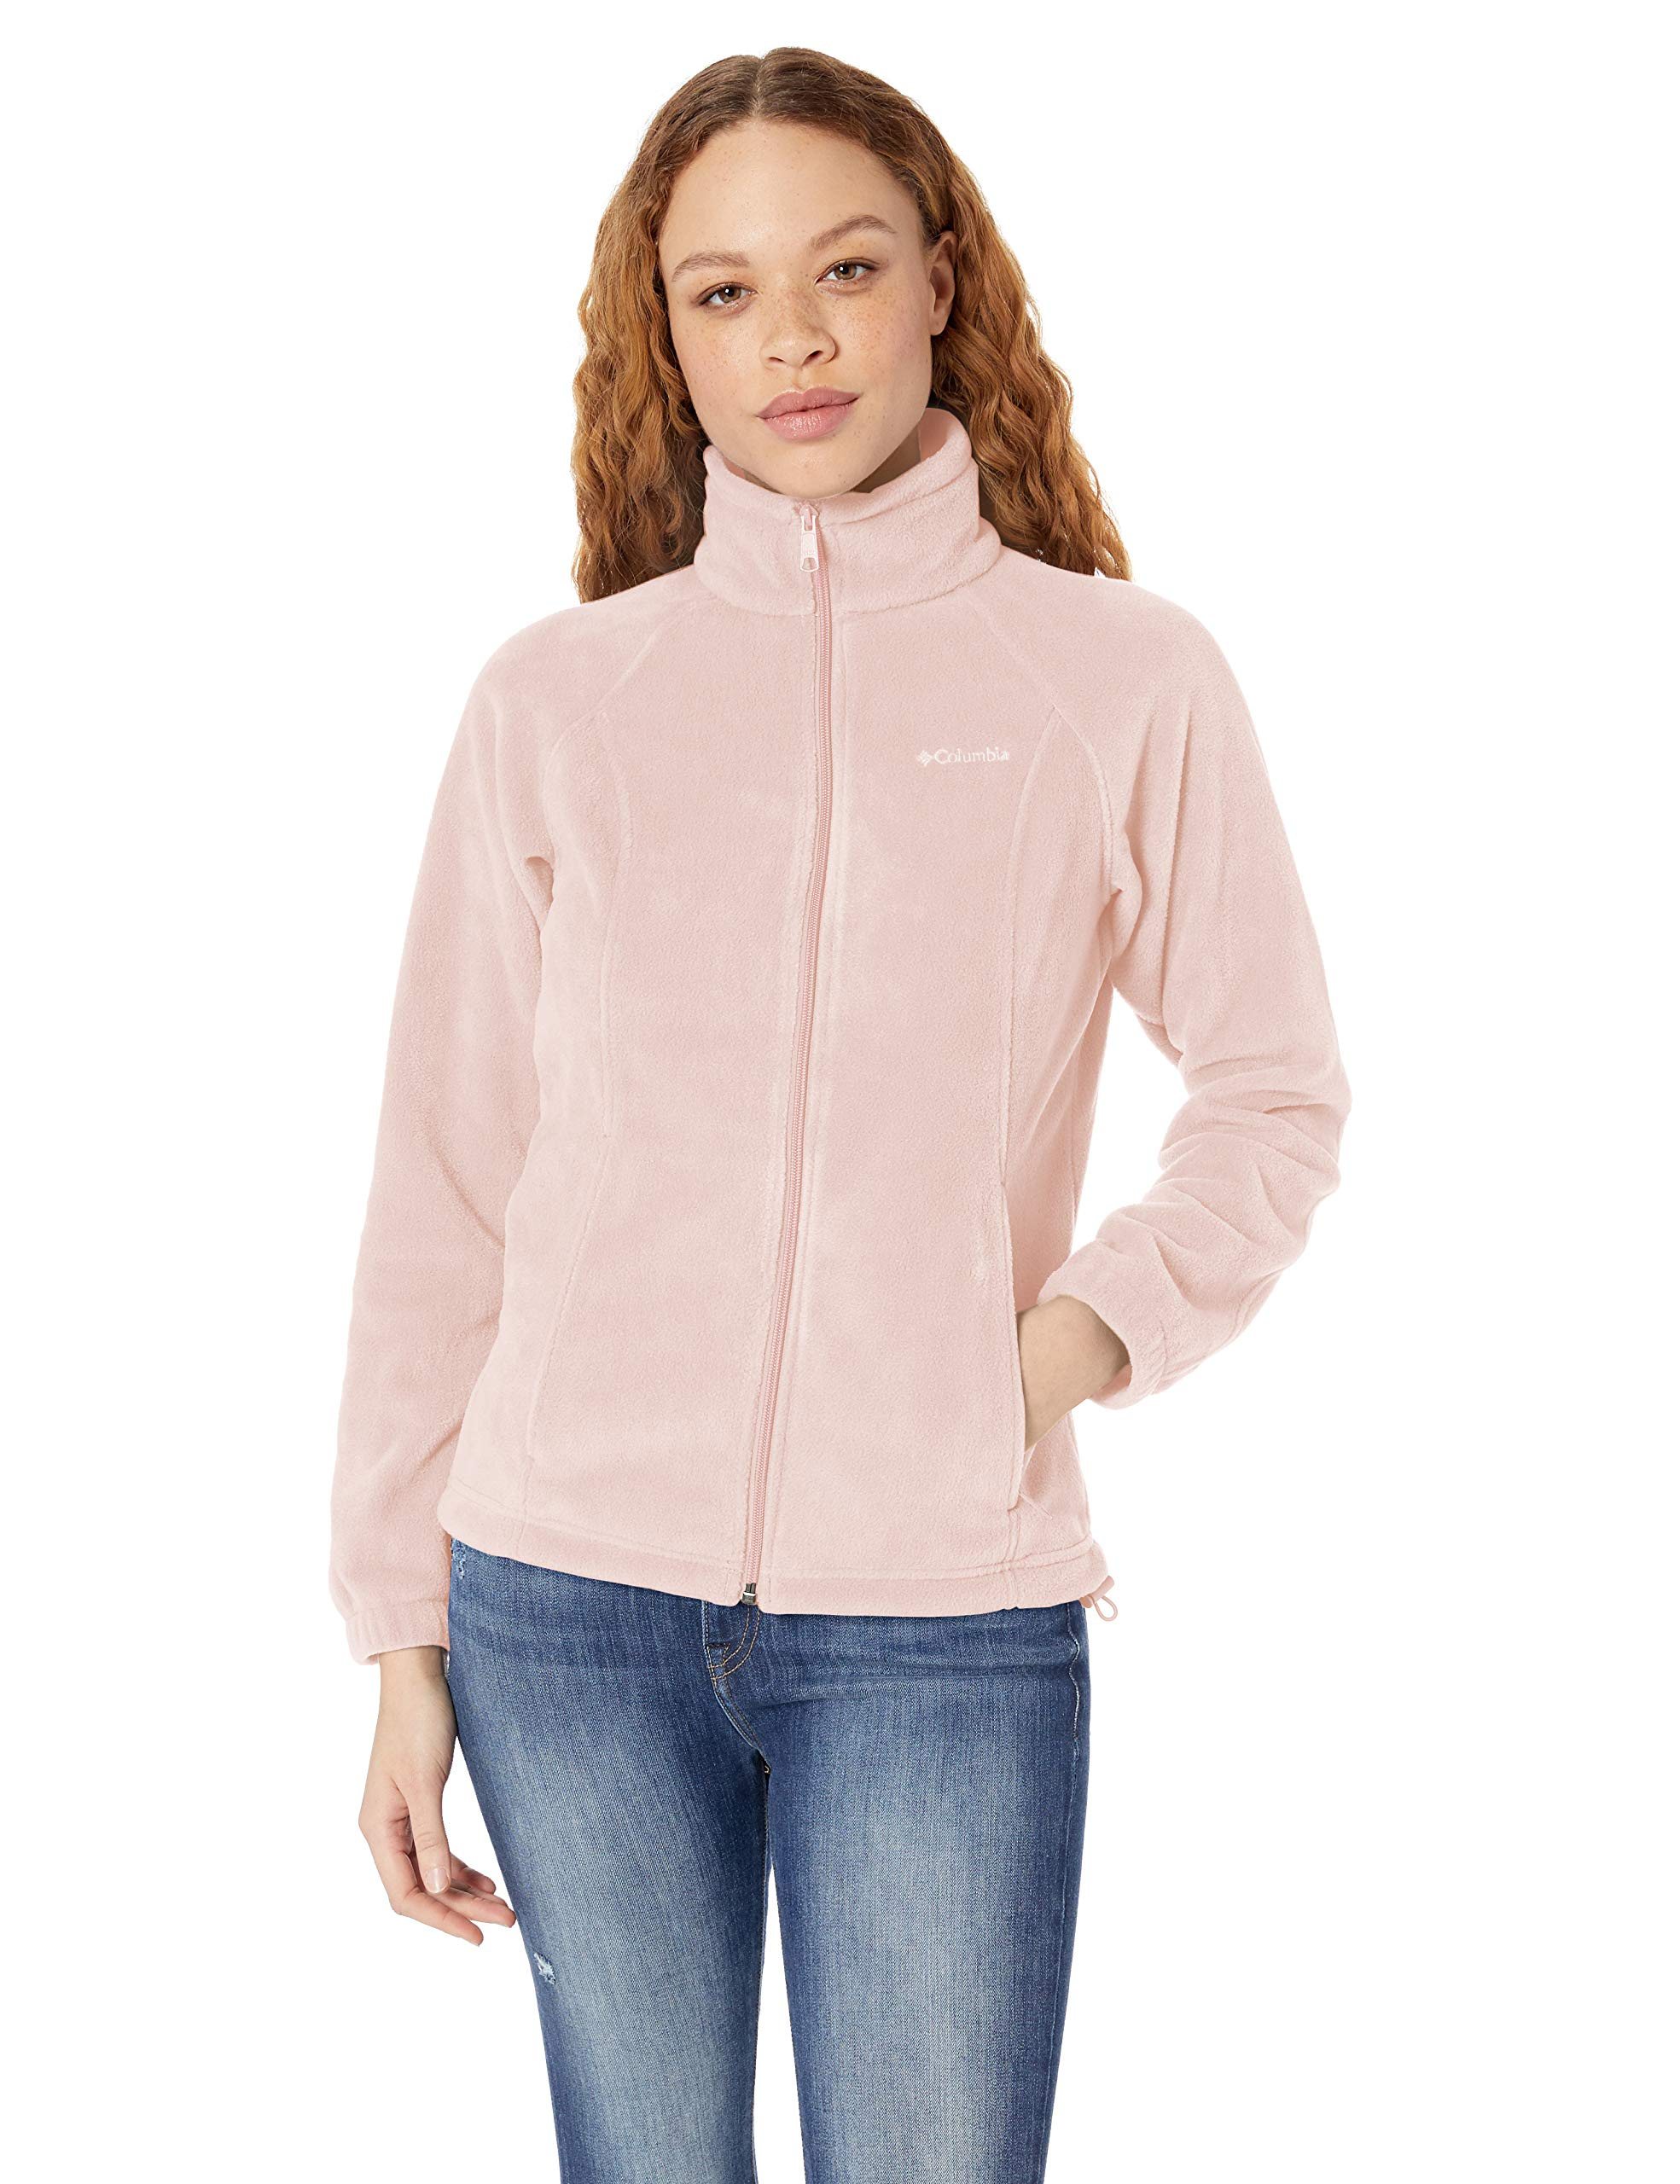 Columbia Women's Plus Size Benton Springs Full Zip Jacket, Soft Fleece with Classic Fit, Mineral Pink, 2X by Columbia